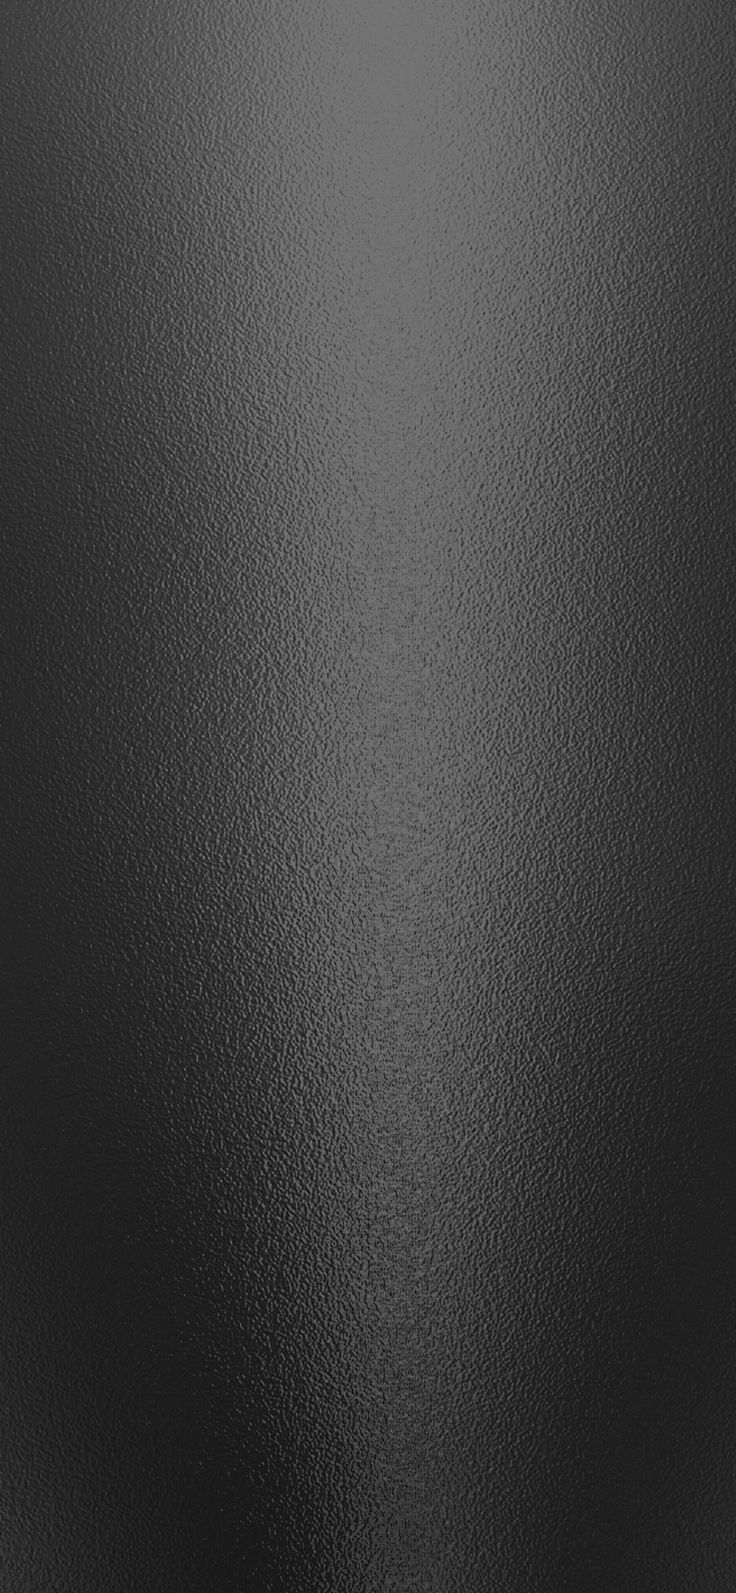 Iphone X Wallpaper Wb14 Texture Metal Dark Pattern Background Via